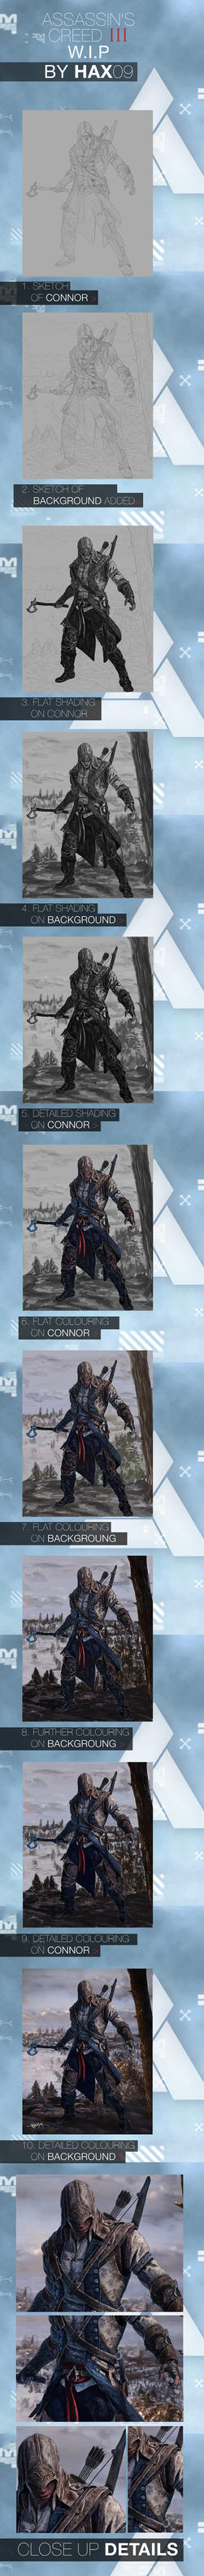 Assassin's Creed 3 Connor Digital Painting W.I.P by Hax09